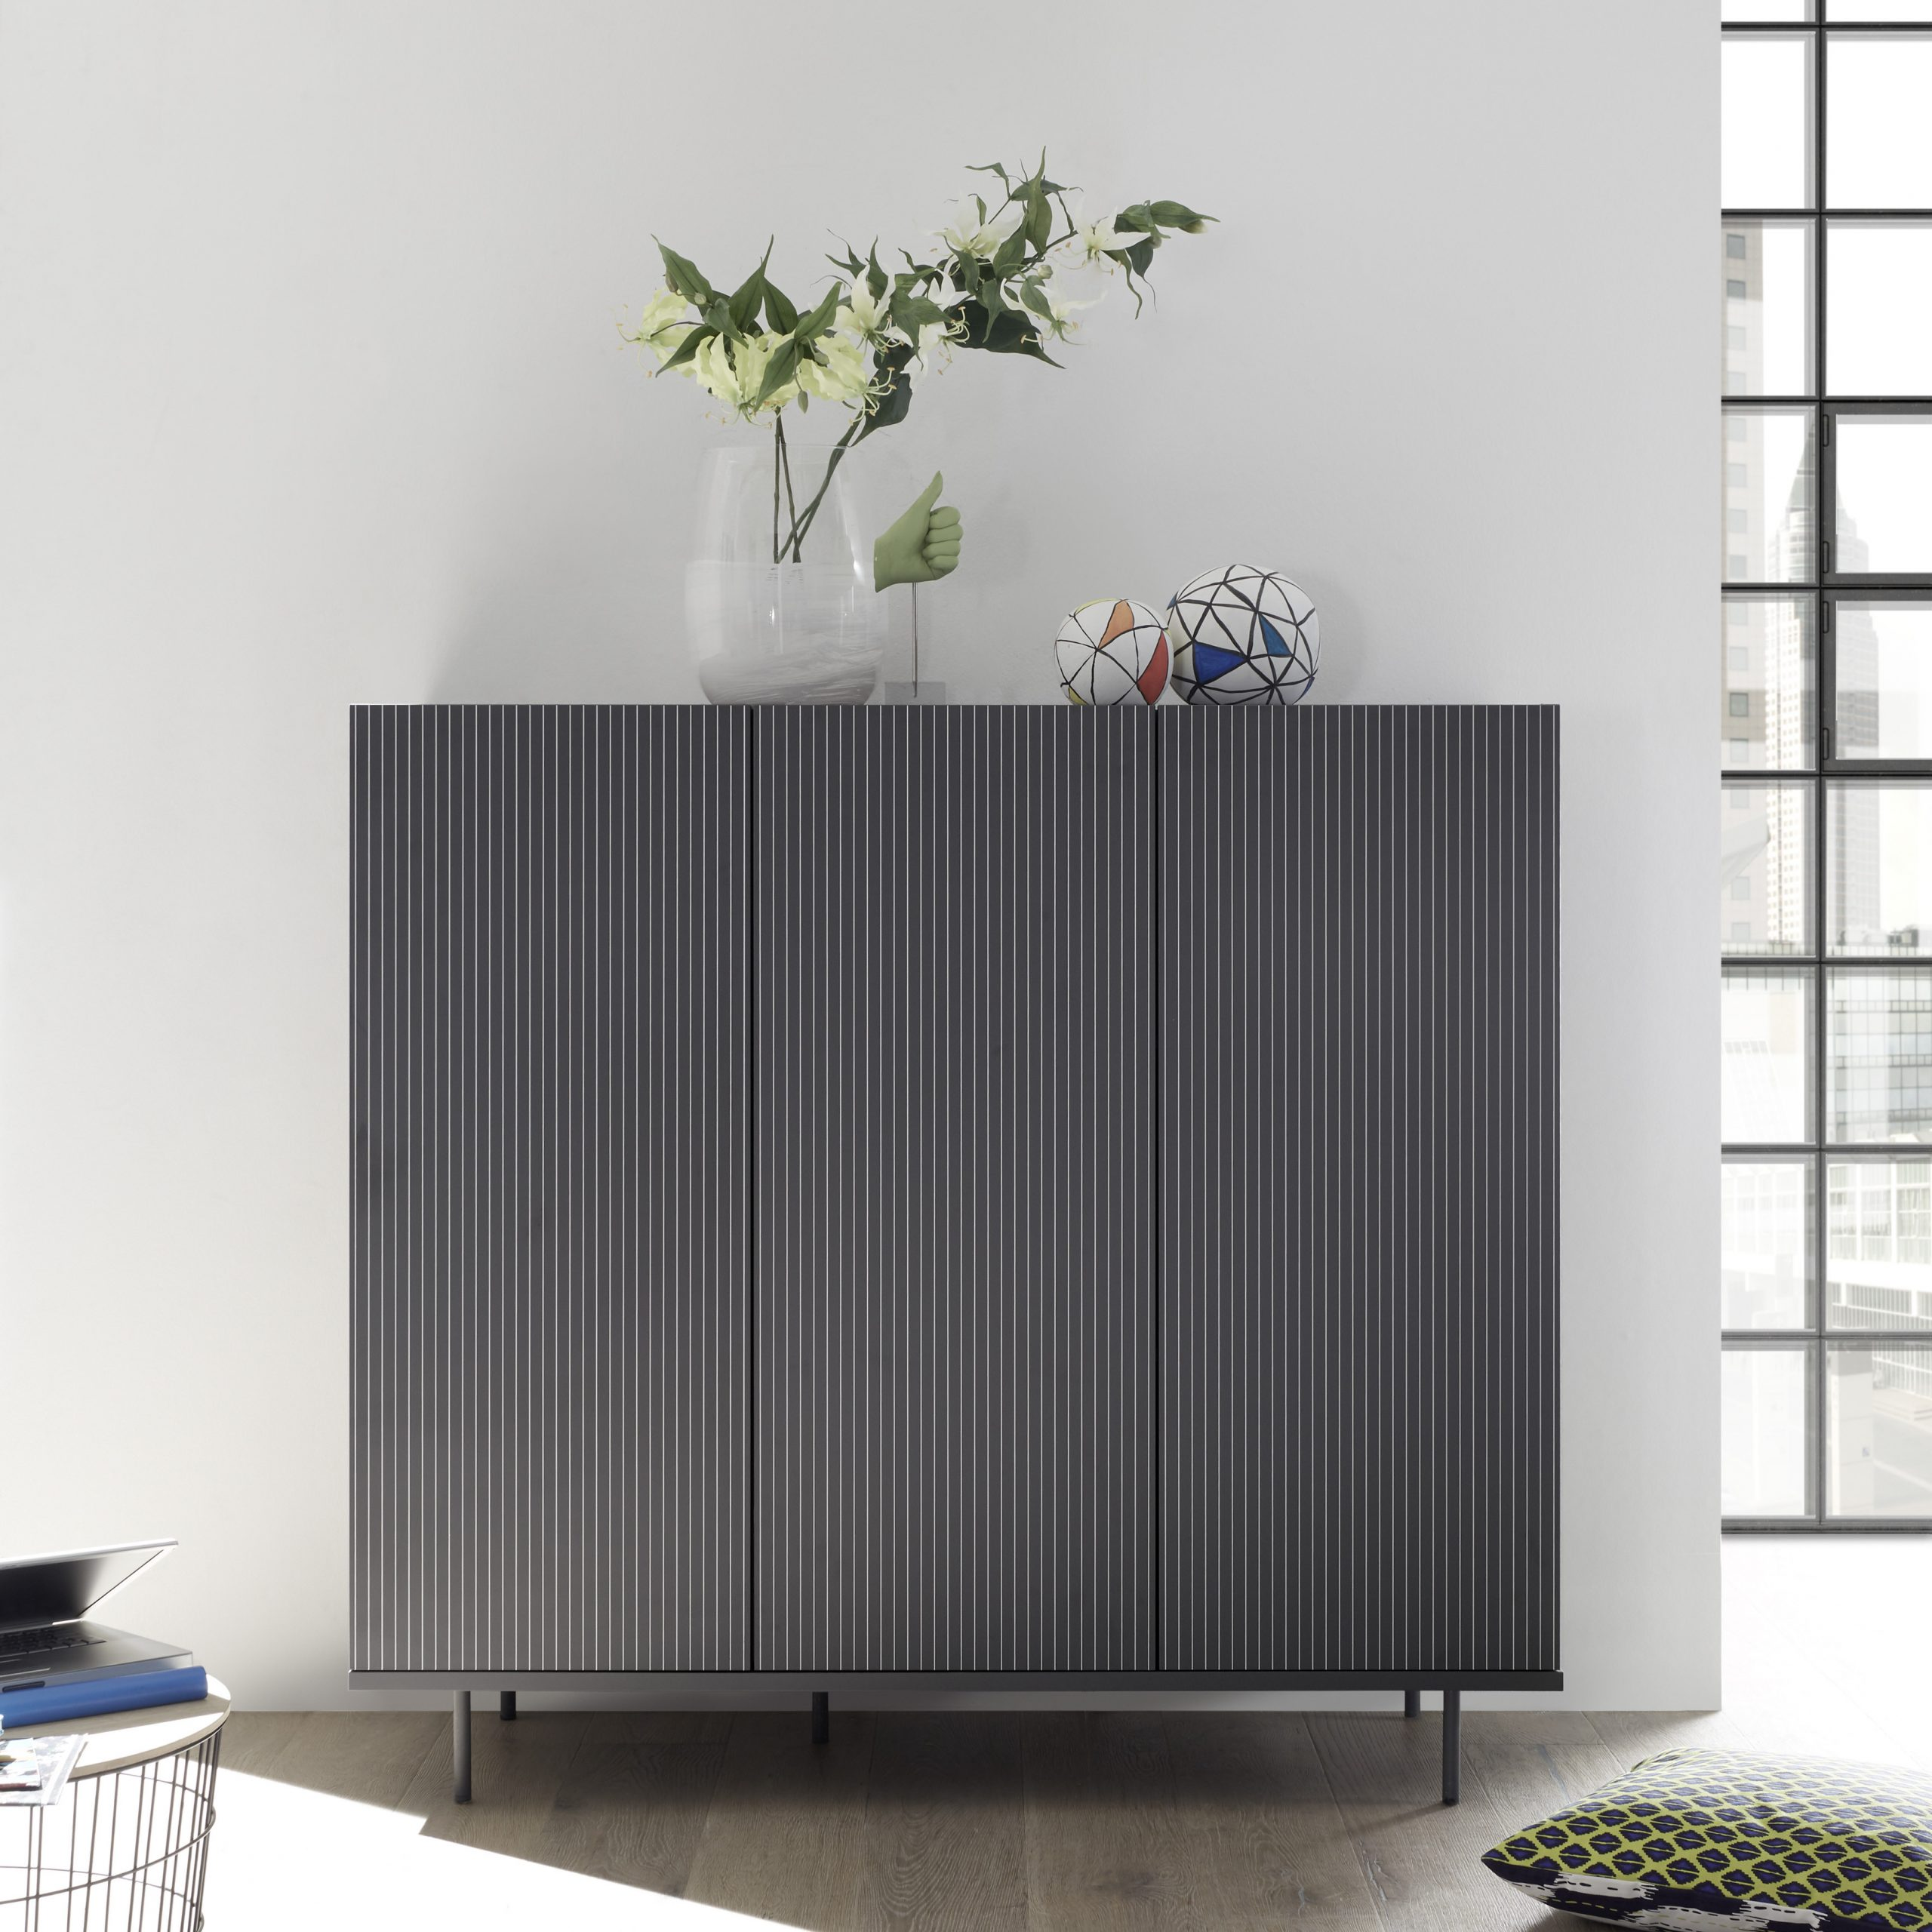 Monza Tv Stands Intended For Preferred Monza Grey Highboard With Pinstripe Stencil – Furniture (View 6 of 10)